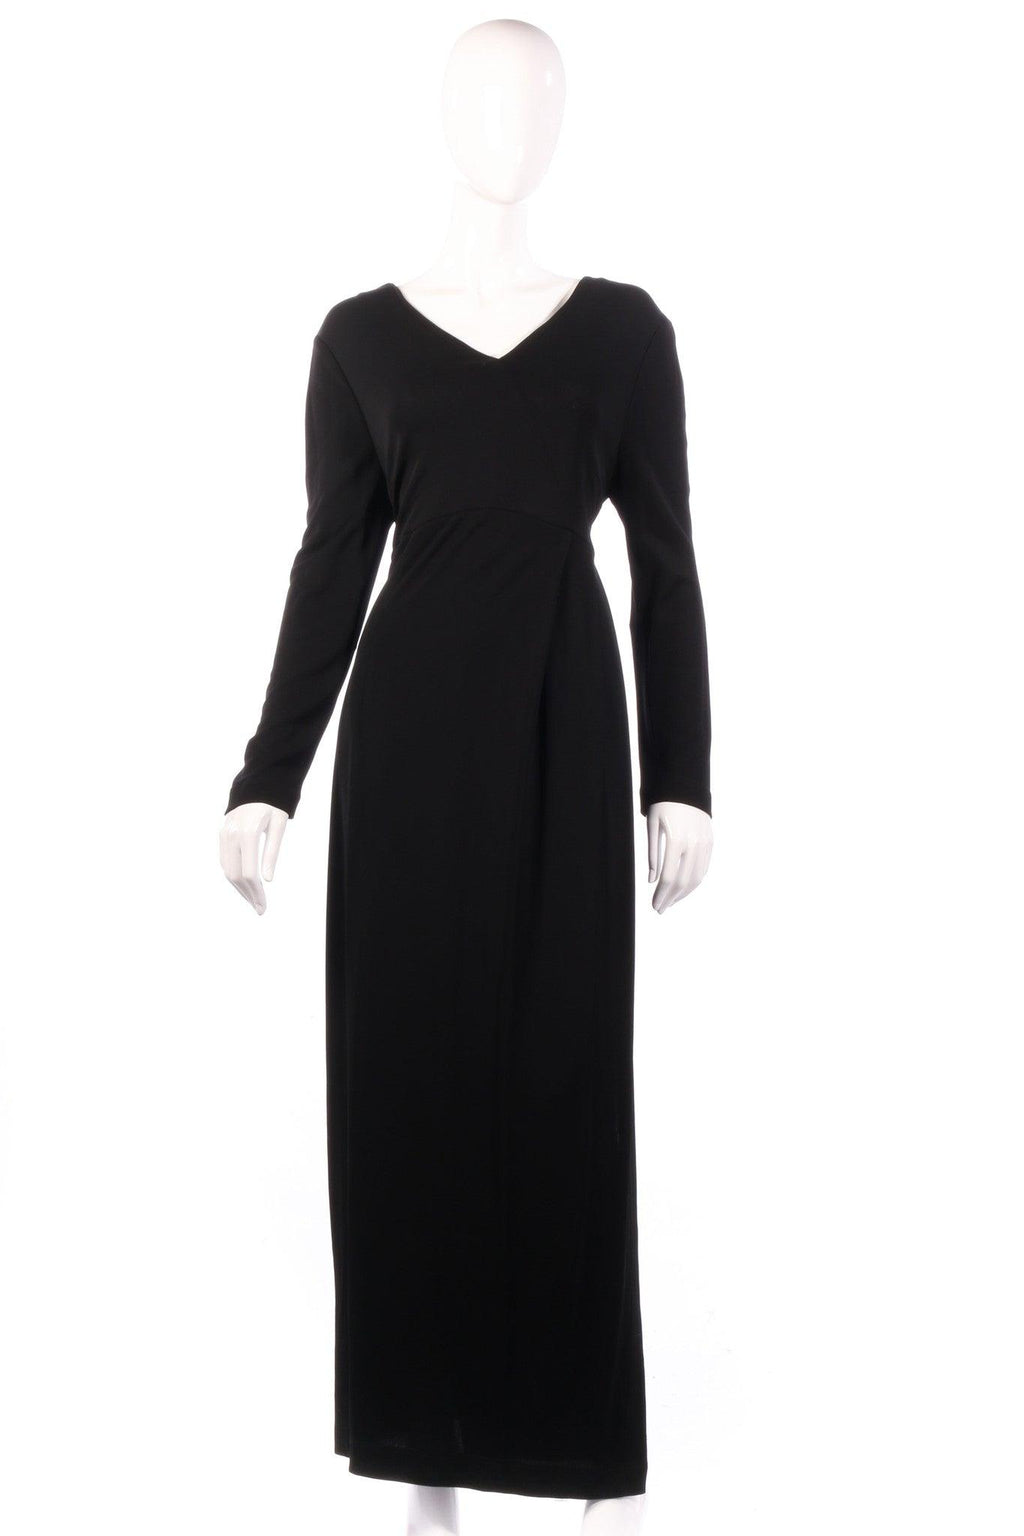 Joseph Janard black dress with detailed back size 14